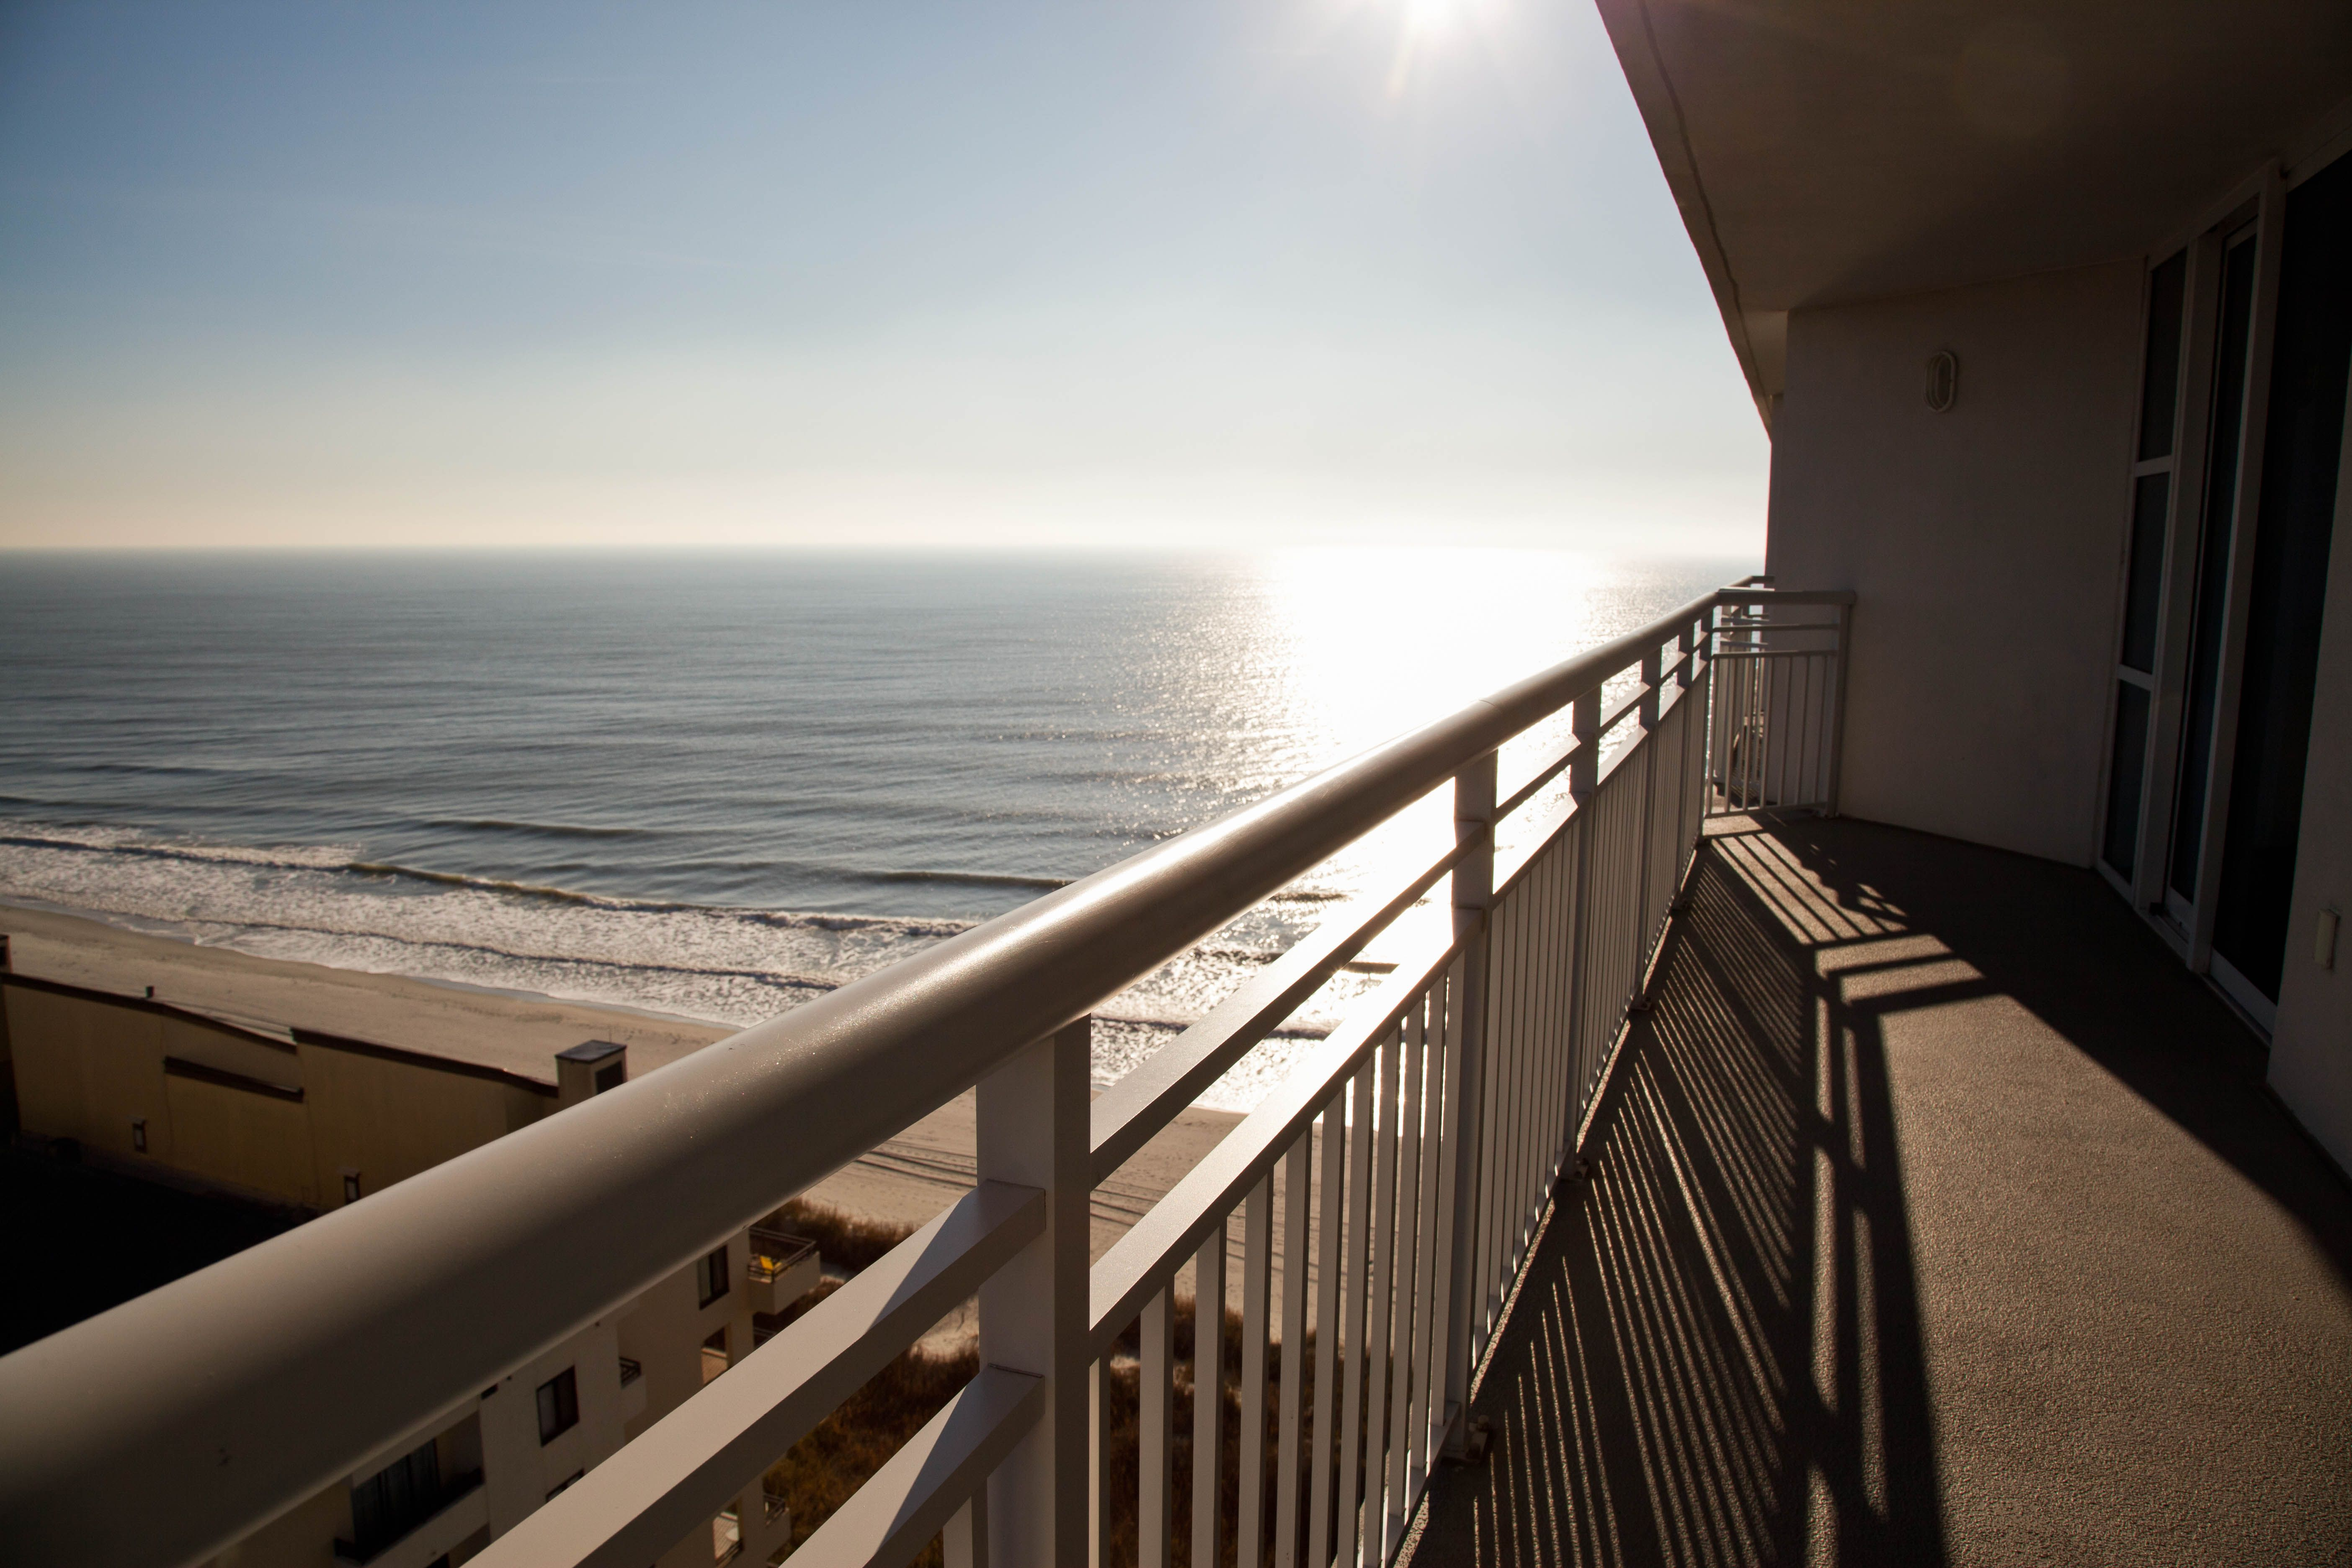 Striking Views Of The Atlantic Ocean Abound When You Stay At Our North Myrtle Beach Resort North Myrtle Beach North Myrtle Beach Resorts Myrtle Beach